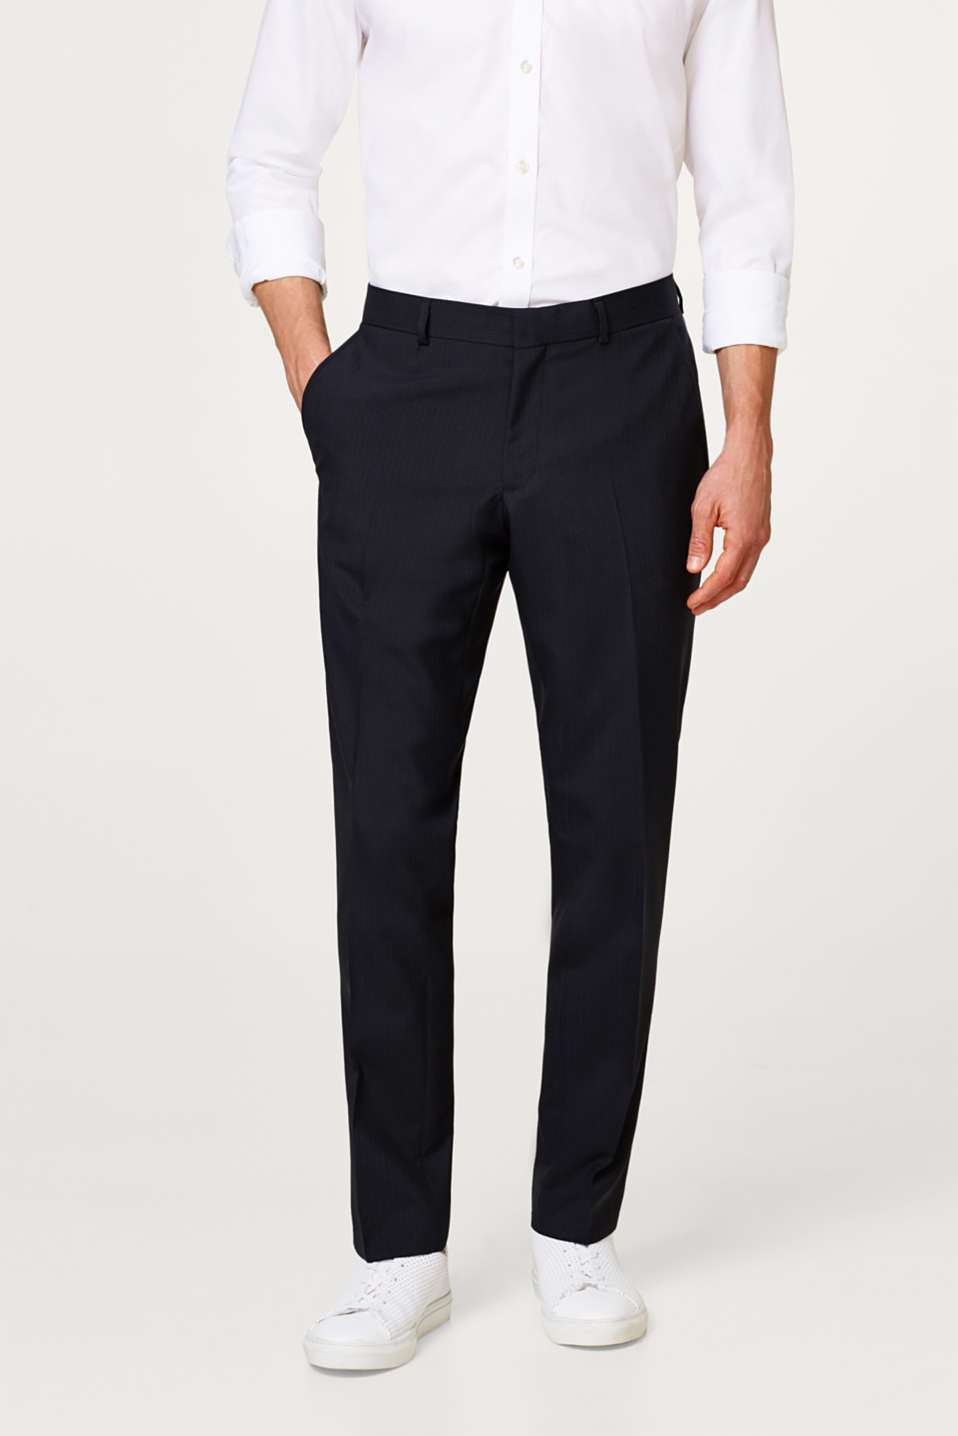 Esprit - Suit trousers with fine stripes and new wool